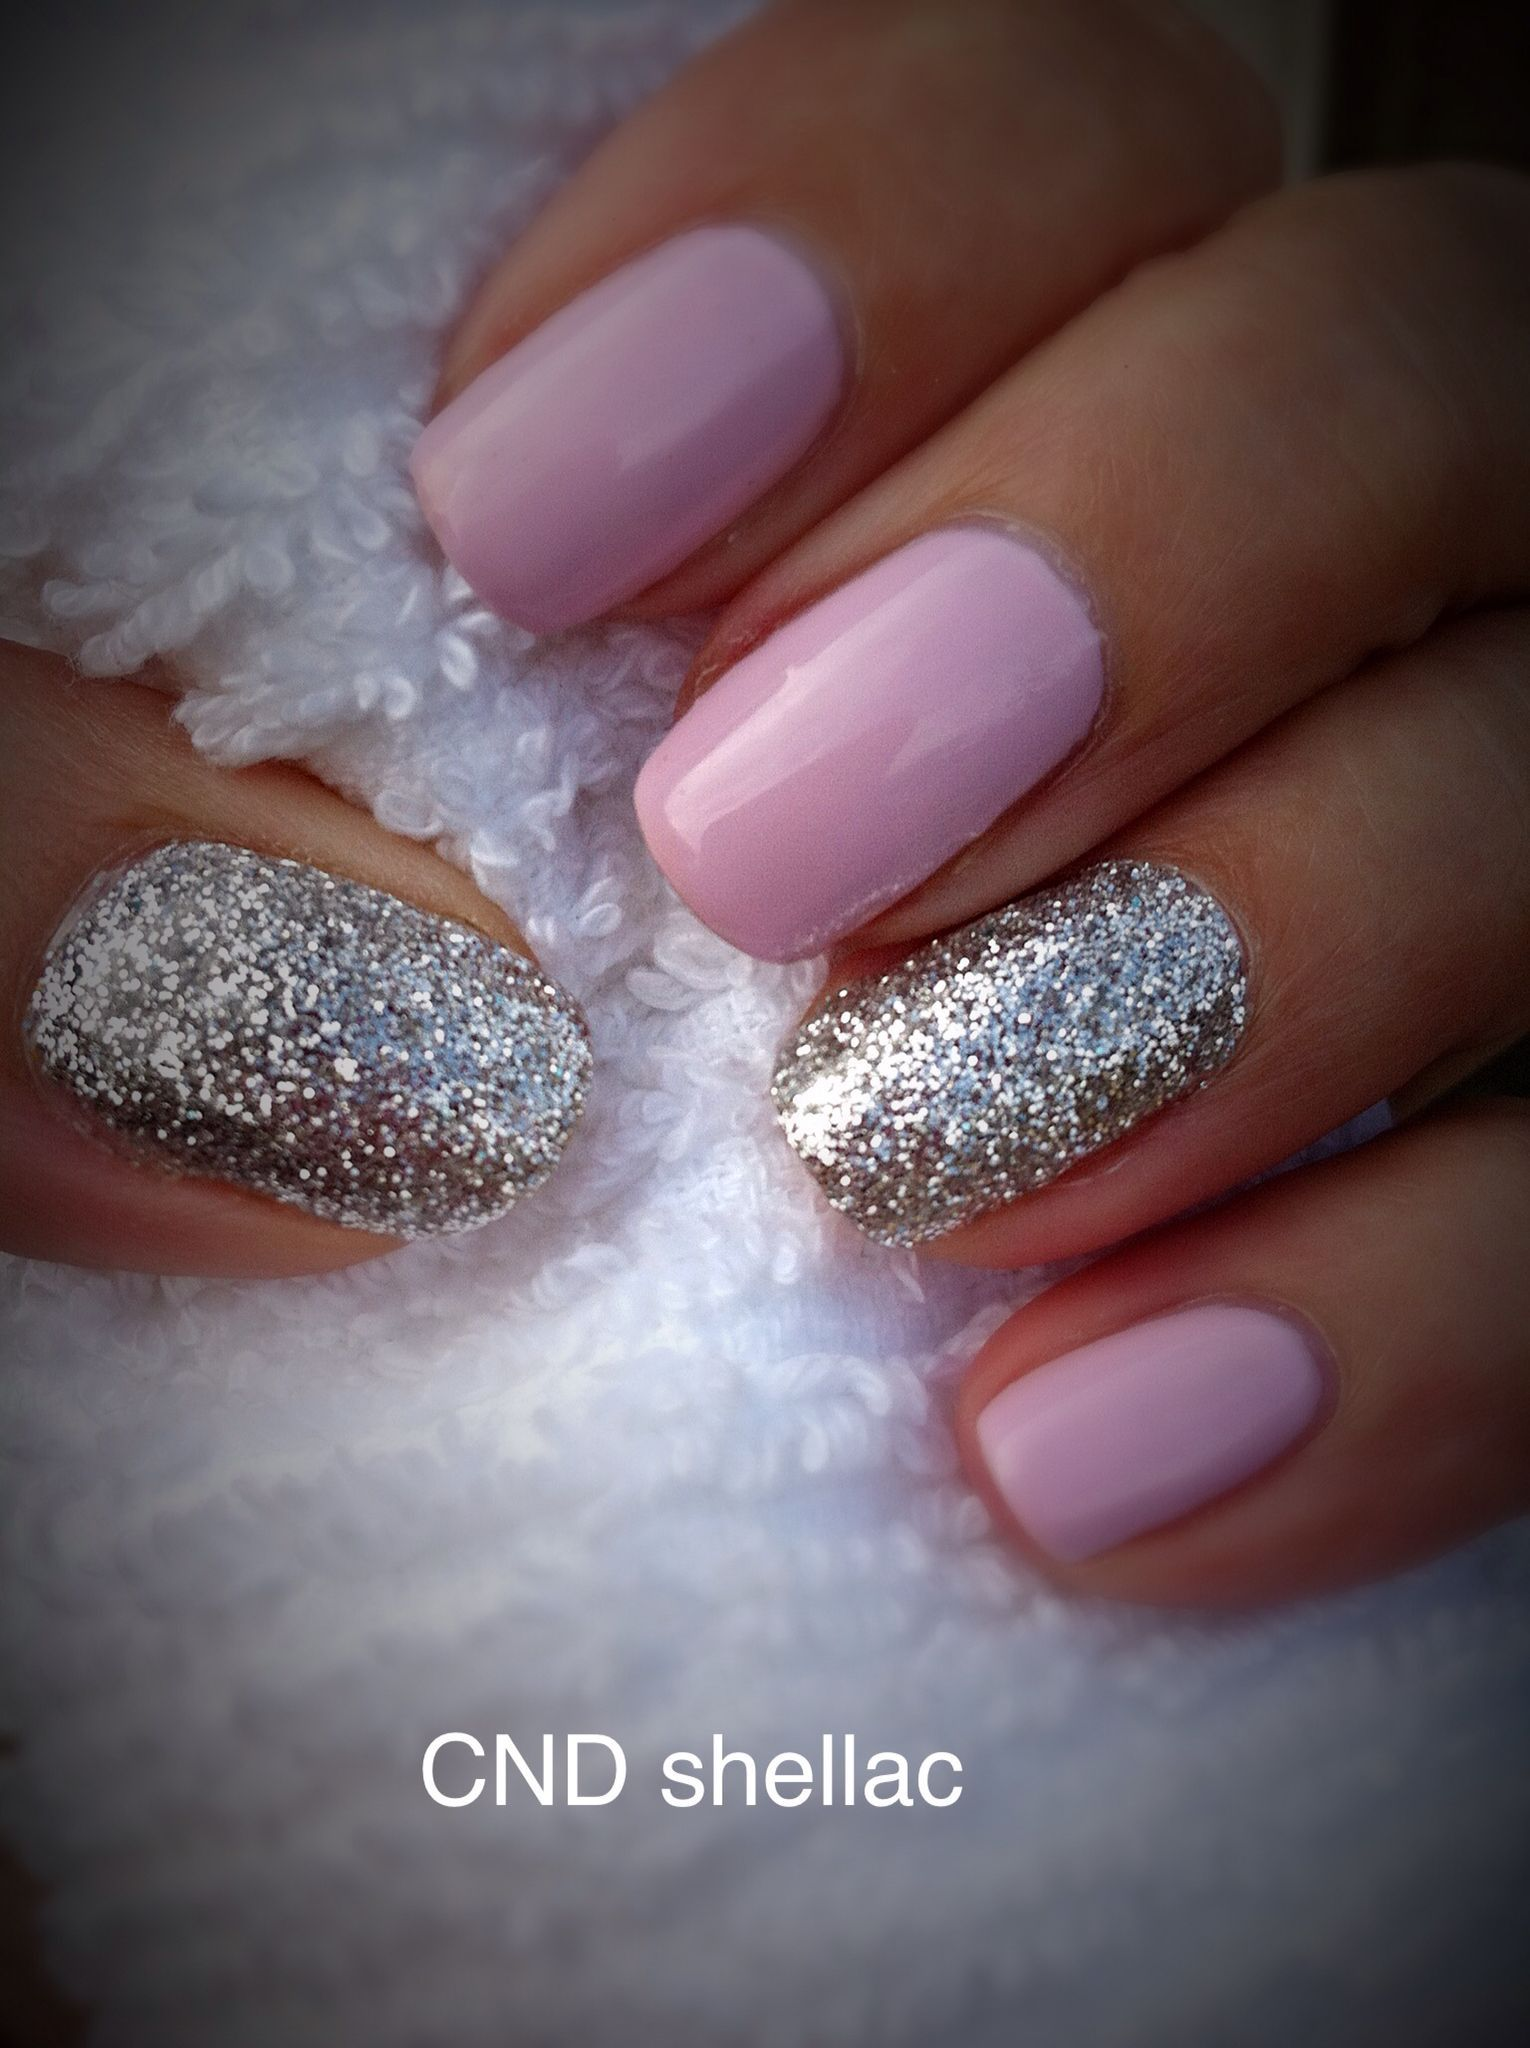 20 Unique Nail Designs For 40 Year Olds Cnd Shellac And Lecente Glitter On Accent Nails 20 Uniqu Shellac Nail Art Shellac Nail Designs Glitter Accent Nails